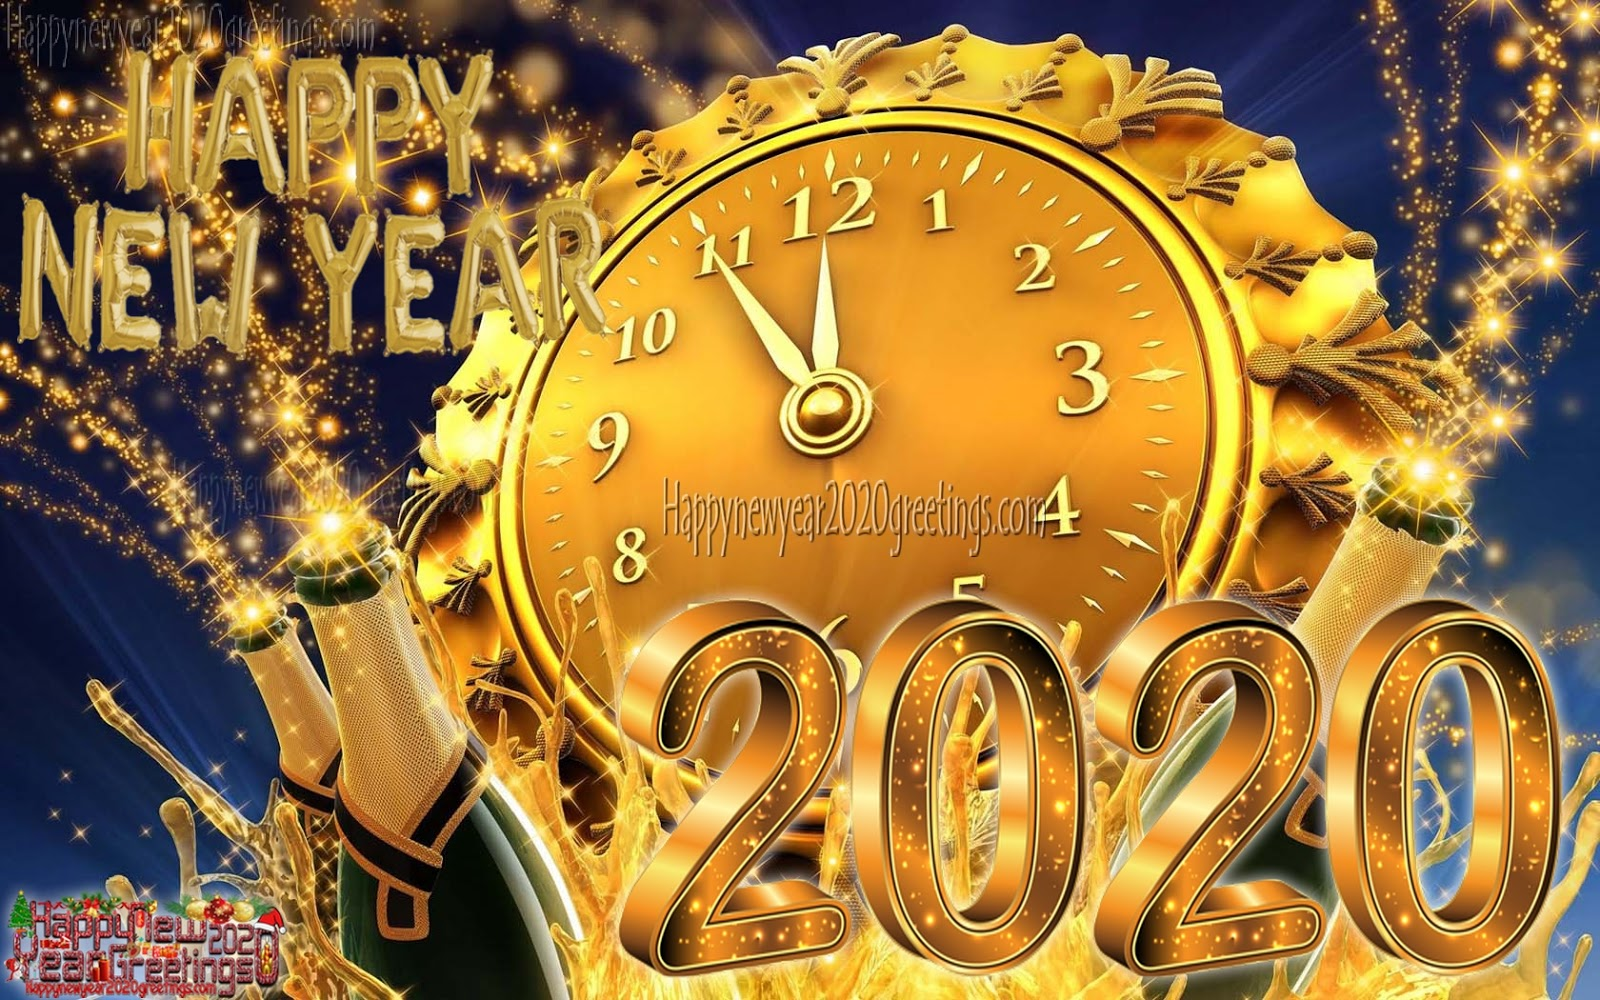 Happy New Year 2020 Images HD 1080p - New Year 2020 Ultra HD